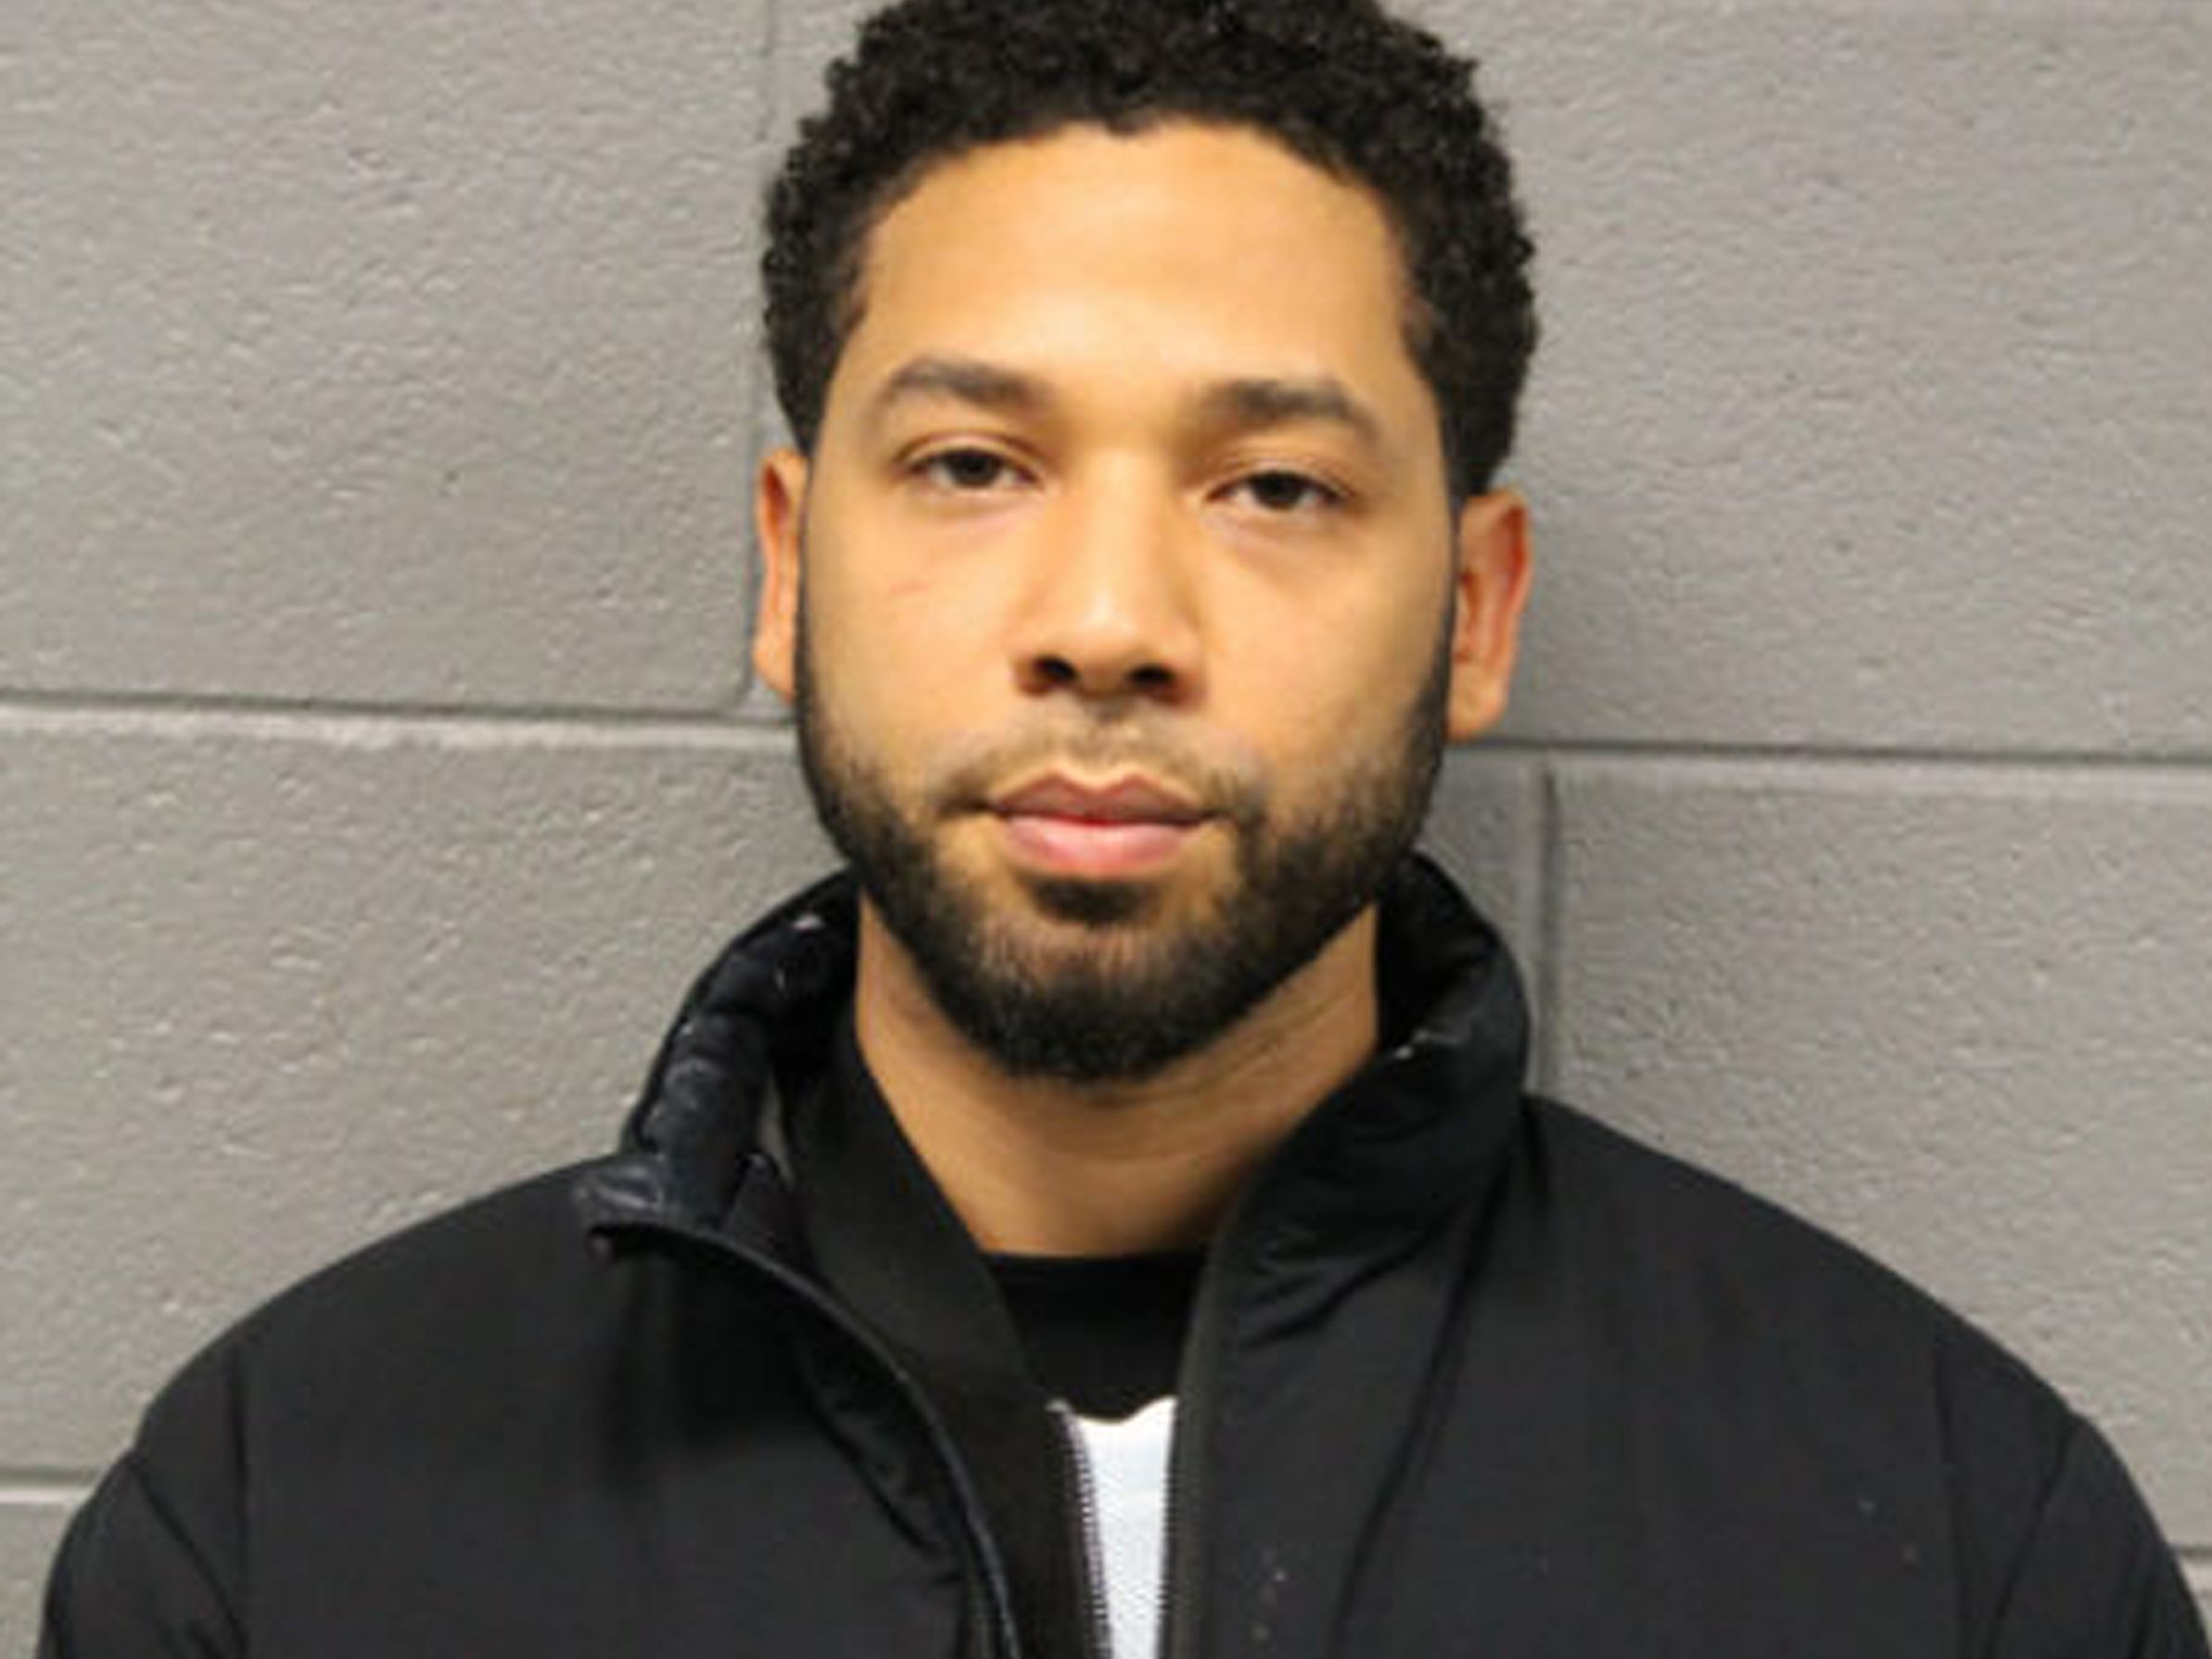 Jussie Smollett's bail sat at $100K; he must surrender passport